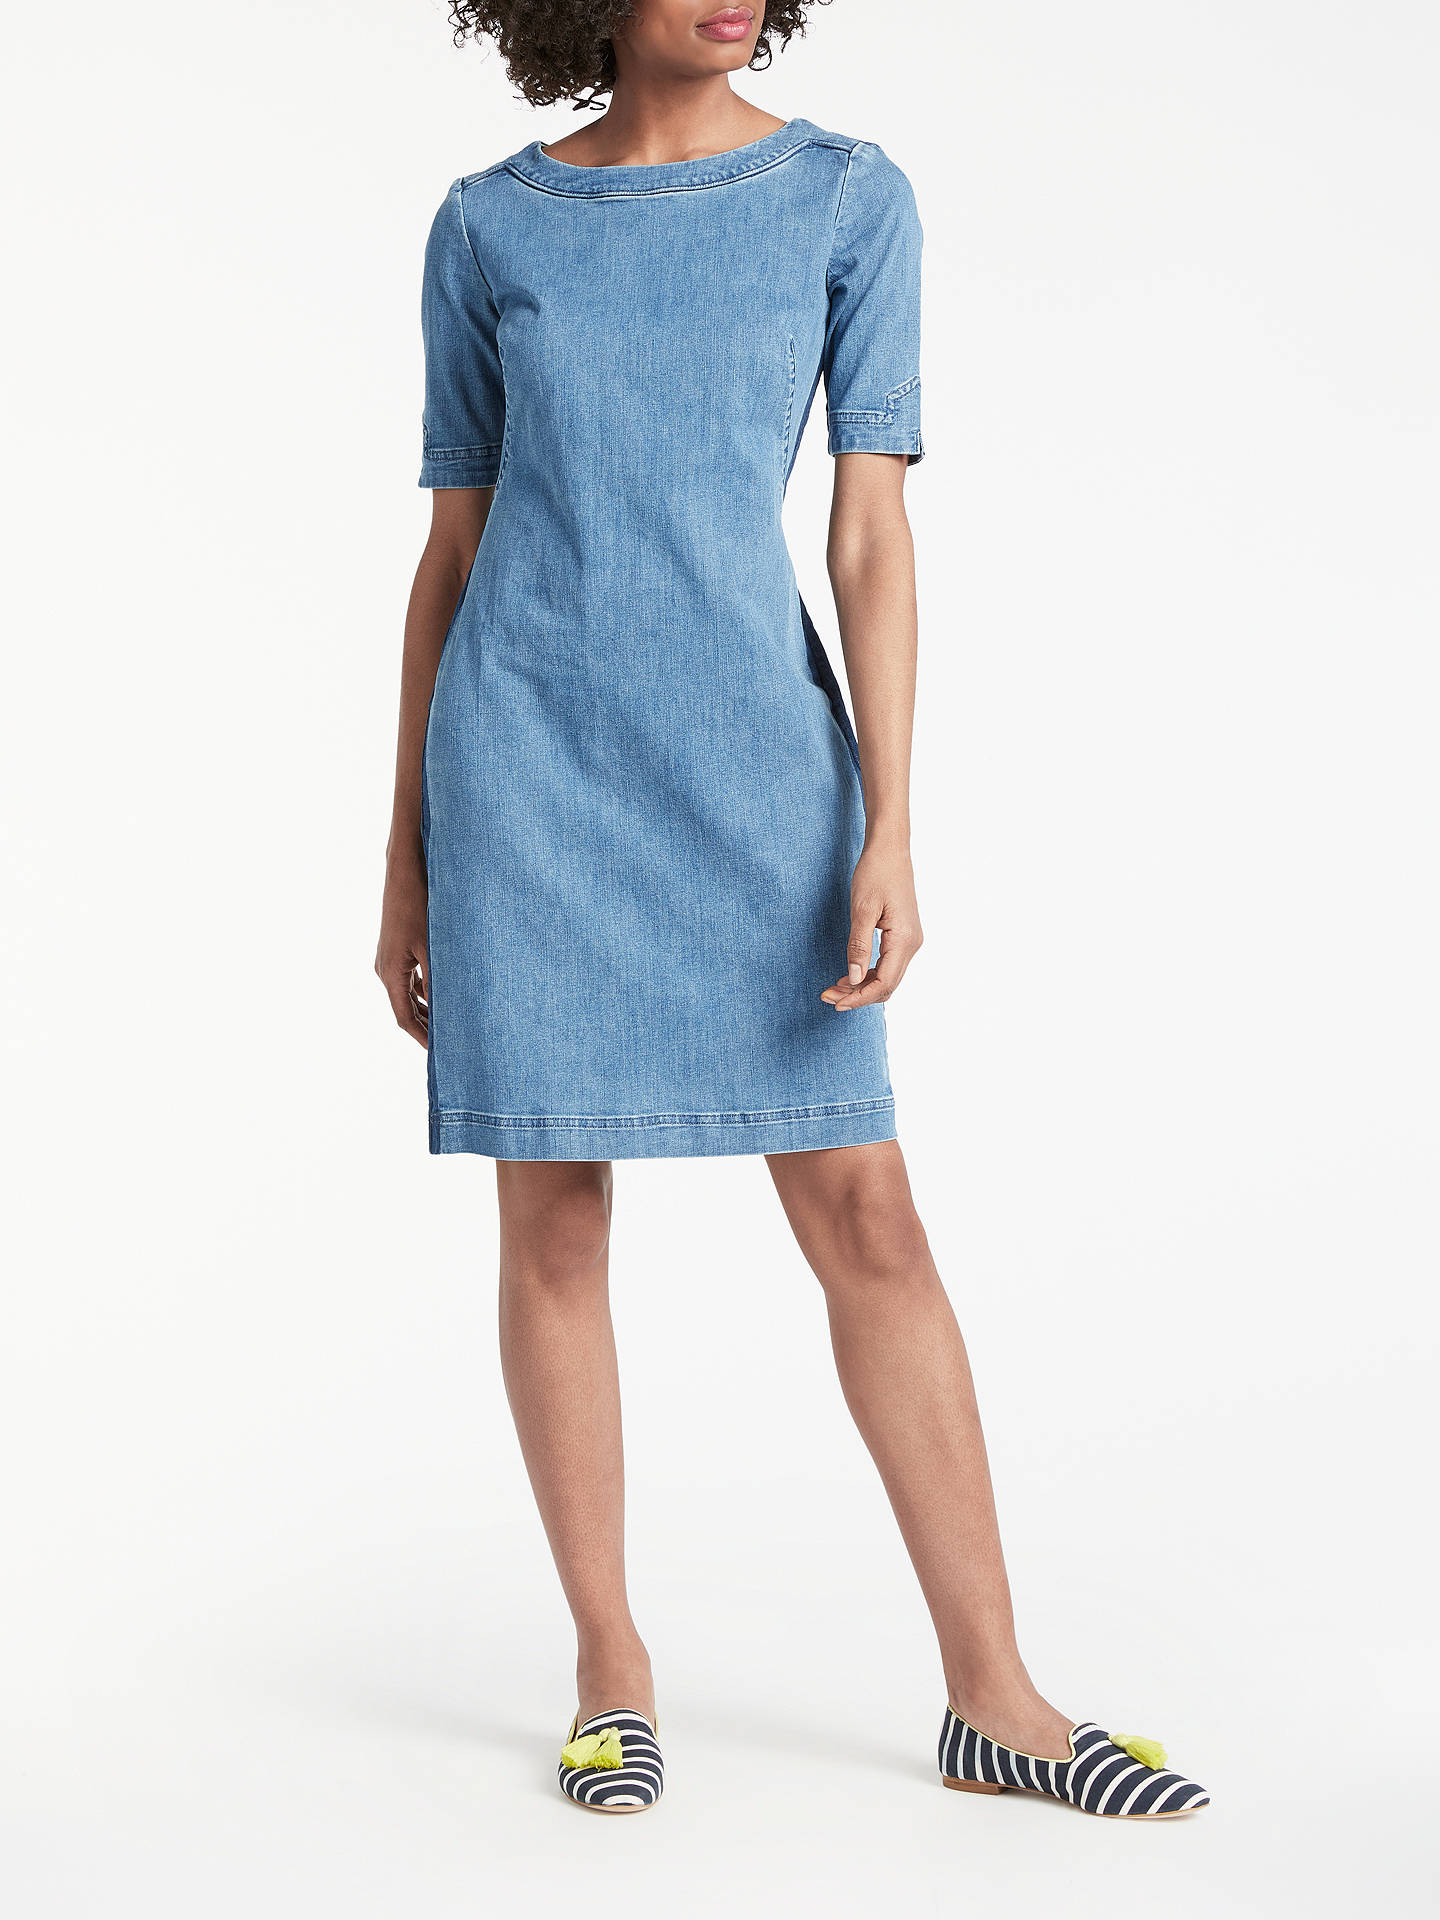 BuyBoden Rhea Denim Dress, Mid Vintage, 14 Online at johnlewis.com